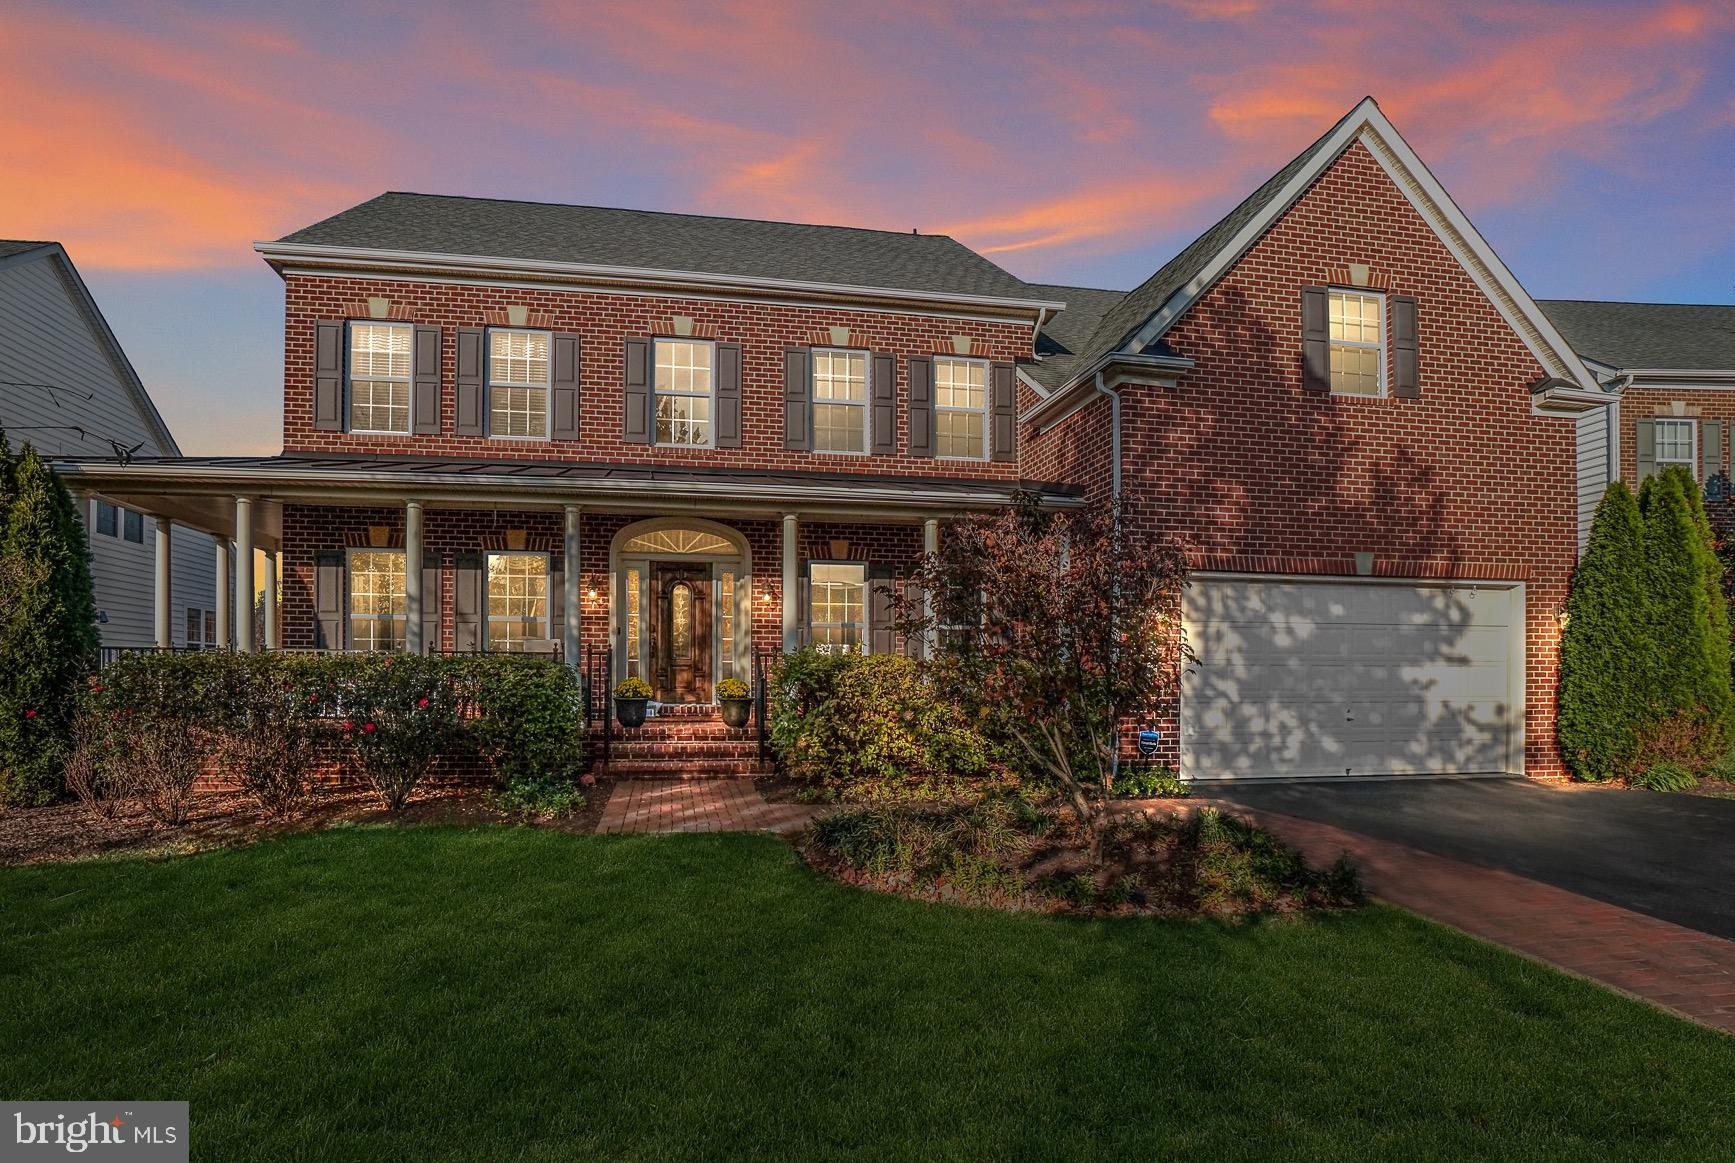 9836 NOTTING HILL DRIVE, FREDERICK, MD 21704